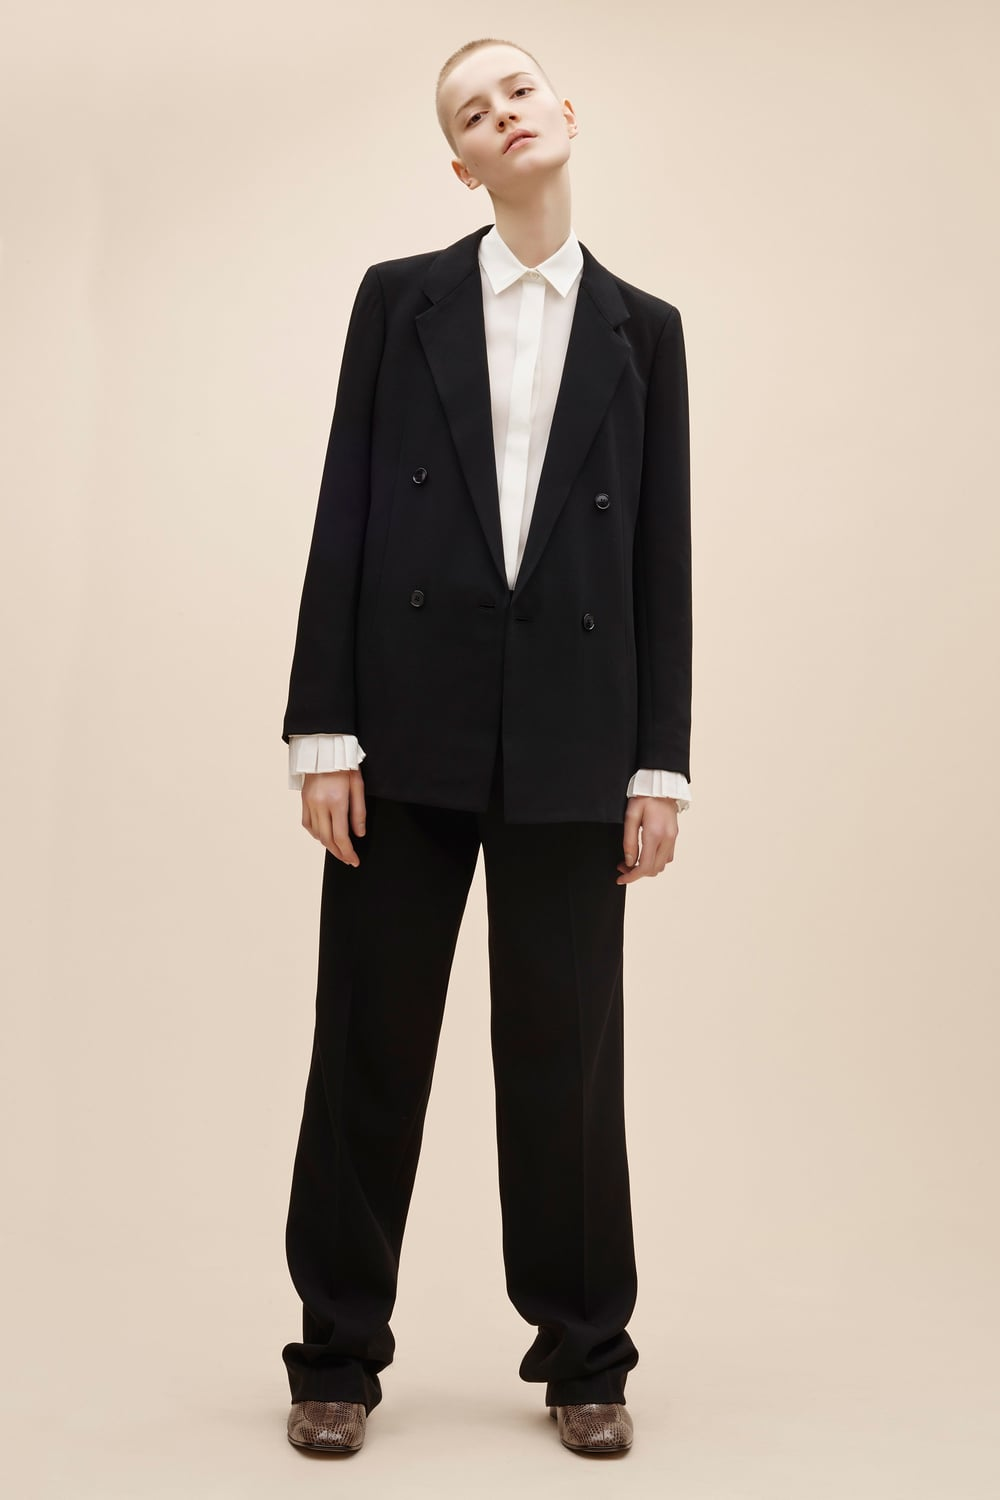 joseph-pre-fall-2016-lookbook-39.jpg